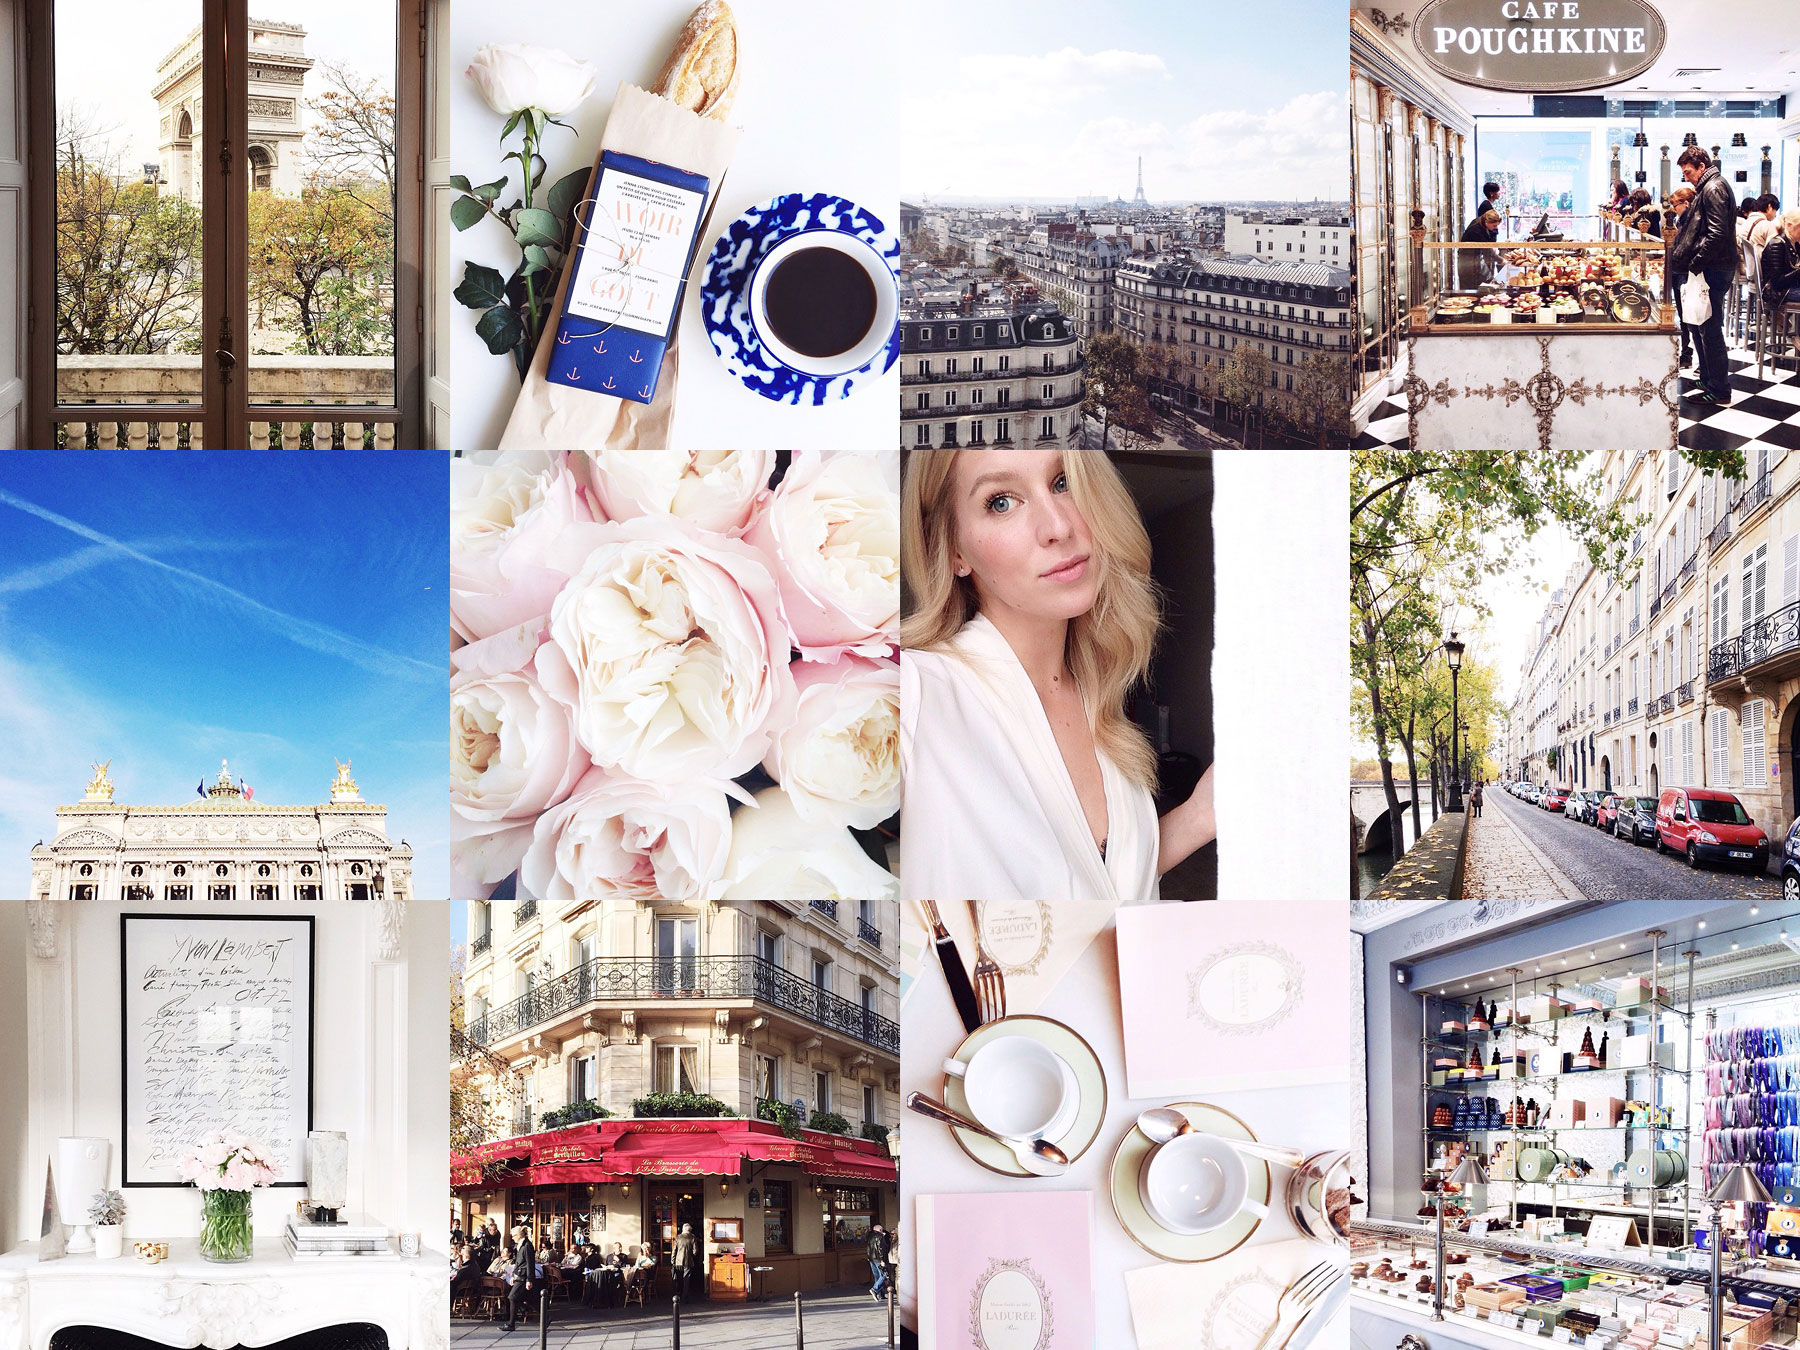 """ParisInFourMonths"" on Instagram"